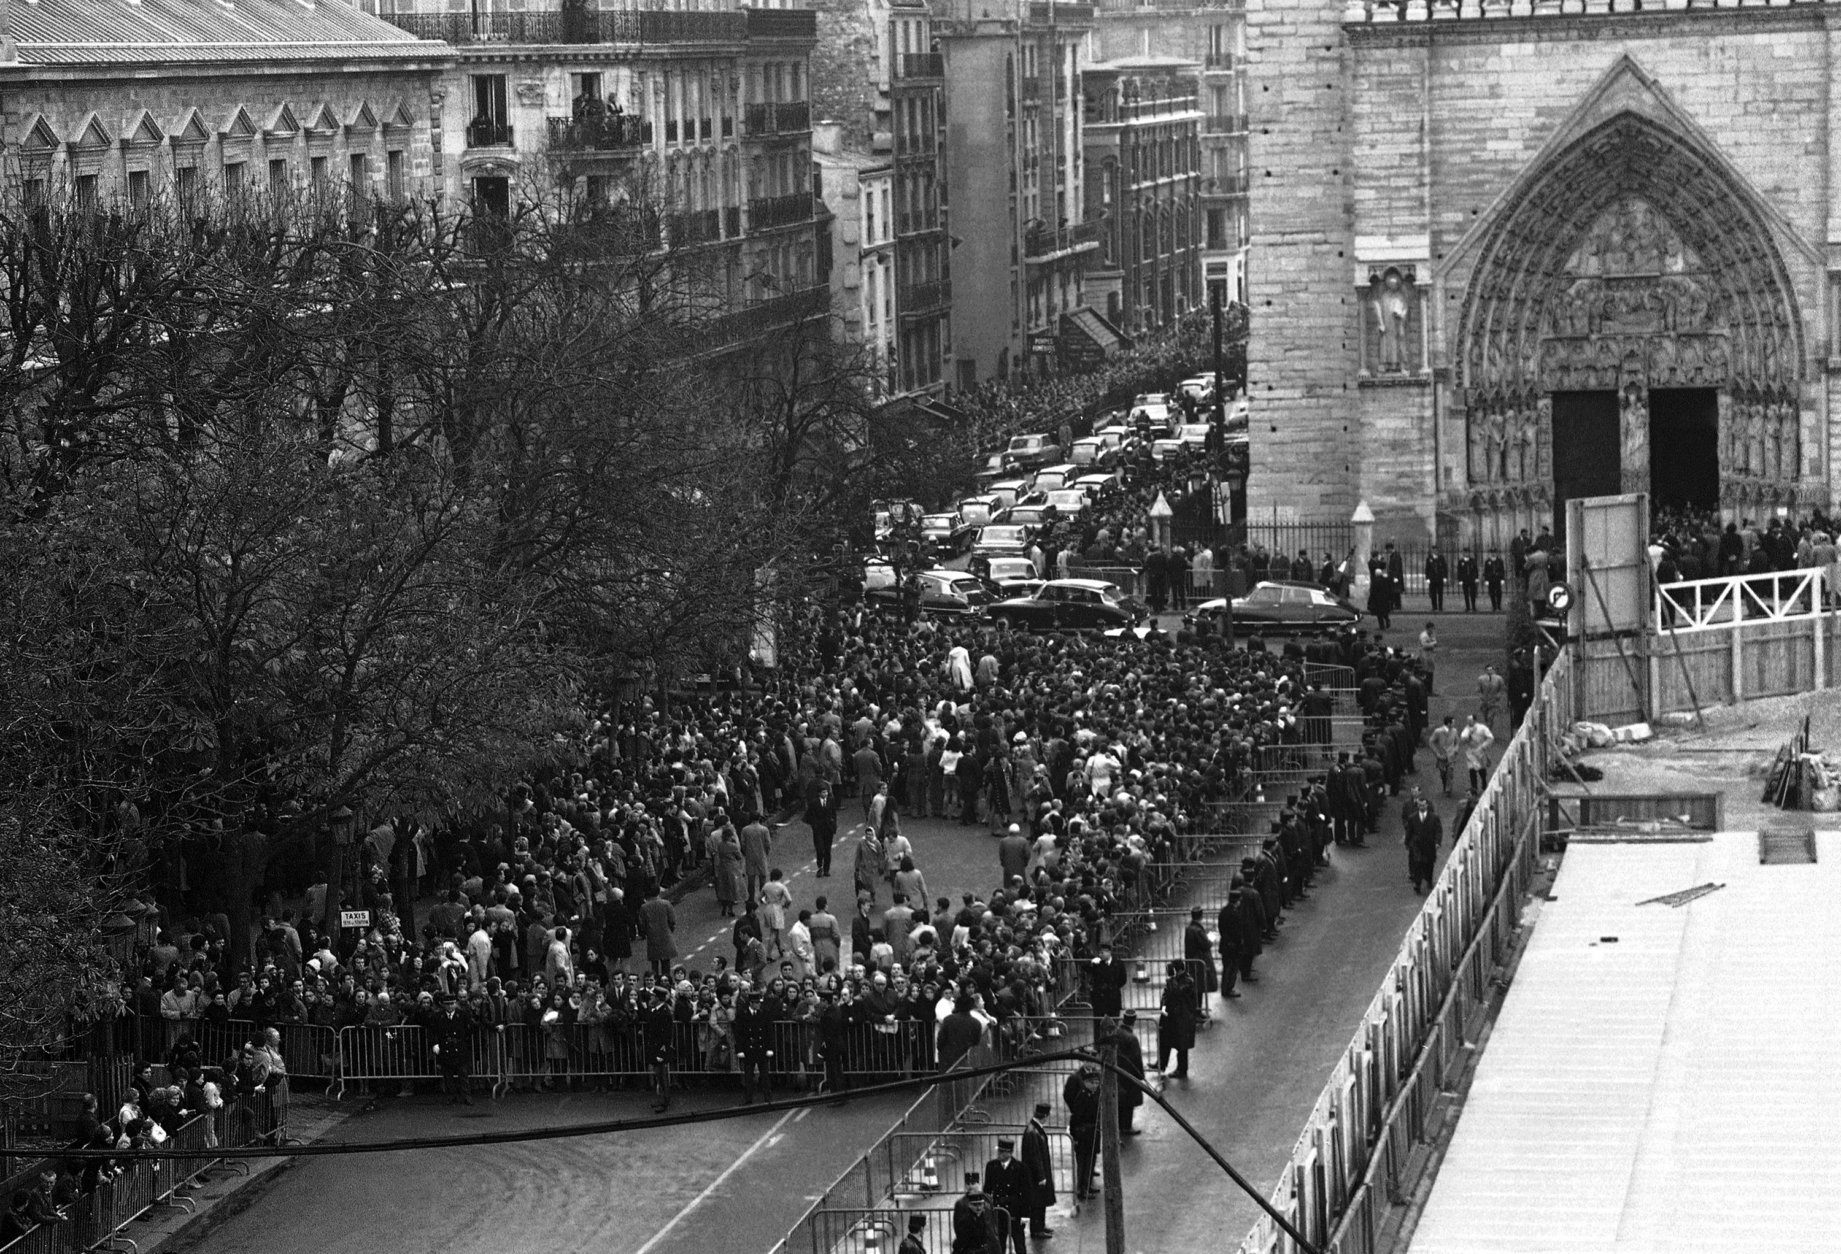 Crowds gathered outside the Notre Dame de Paris, France where a memorial service is being held for the former French President Charles de Gaulle on Nov. 12, 1970. (AP Photo)